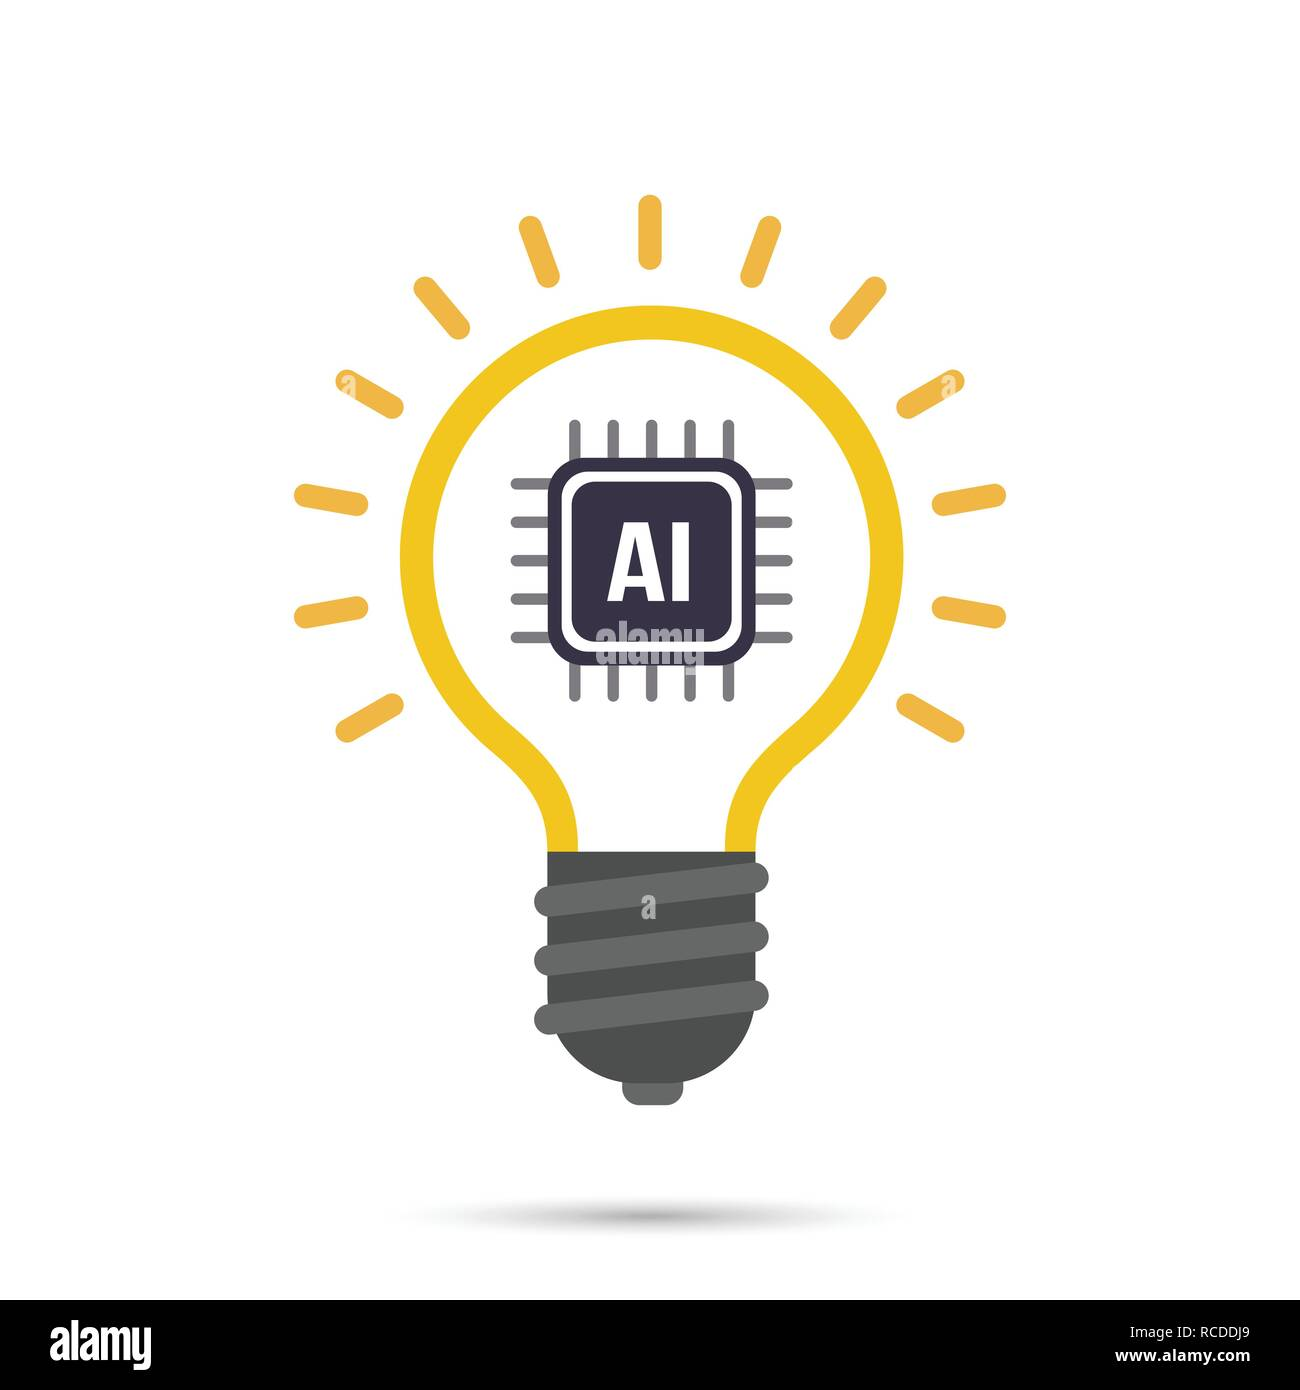 AI Artificial intelligence Technology bulb icon design element vector illustration eps10 Stock Vector